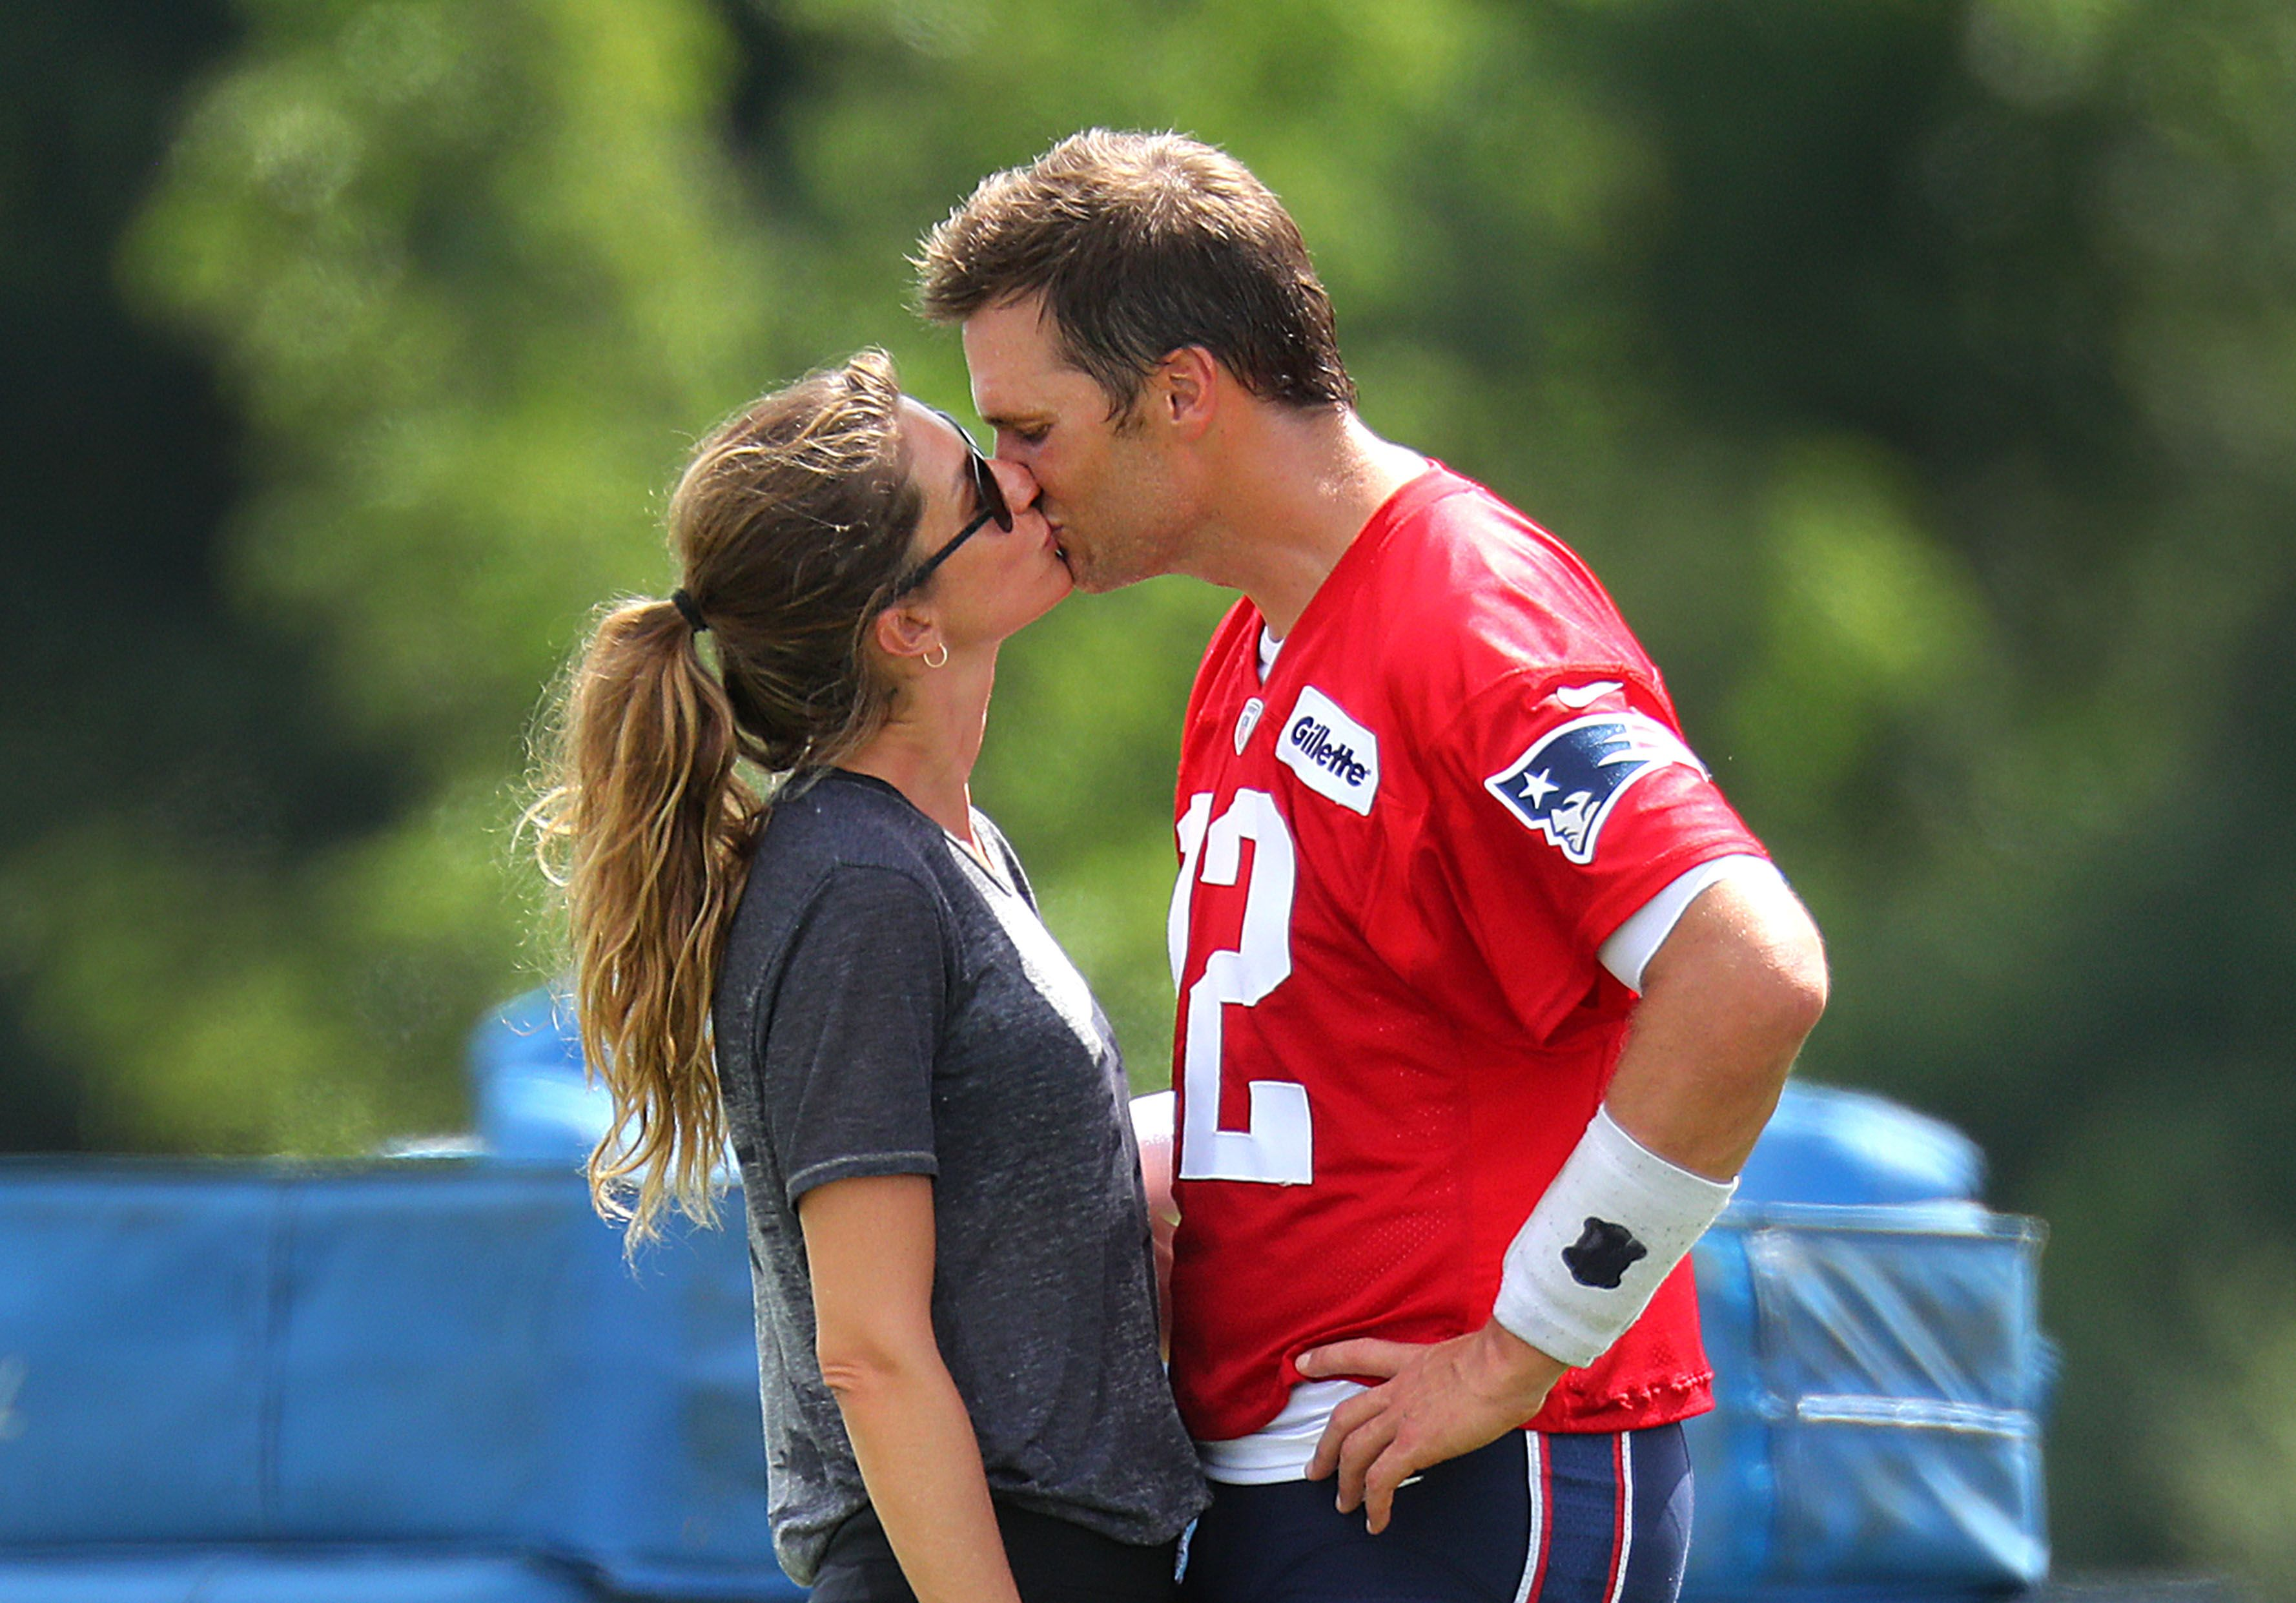 Tom Brady kisses his Gisele Bundchen following Patriots training camp at the Gillette Stadium practice facility in Foxborough, MA on Aug. 3, 2018. | Source: Getty Images